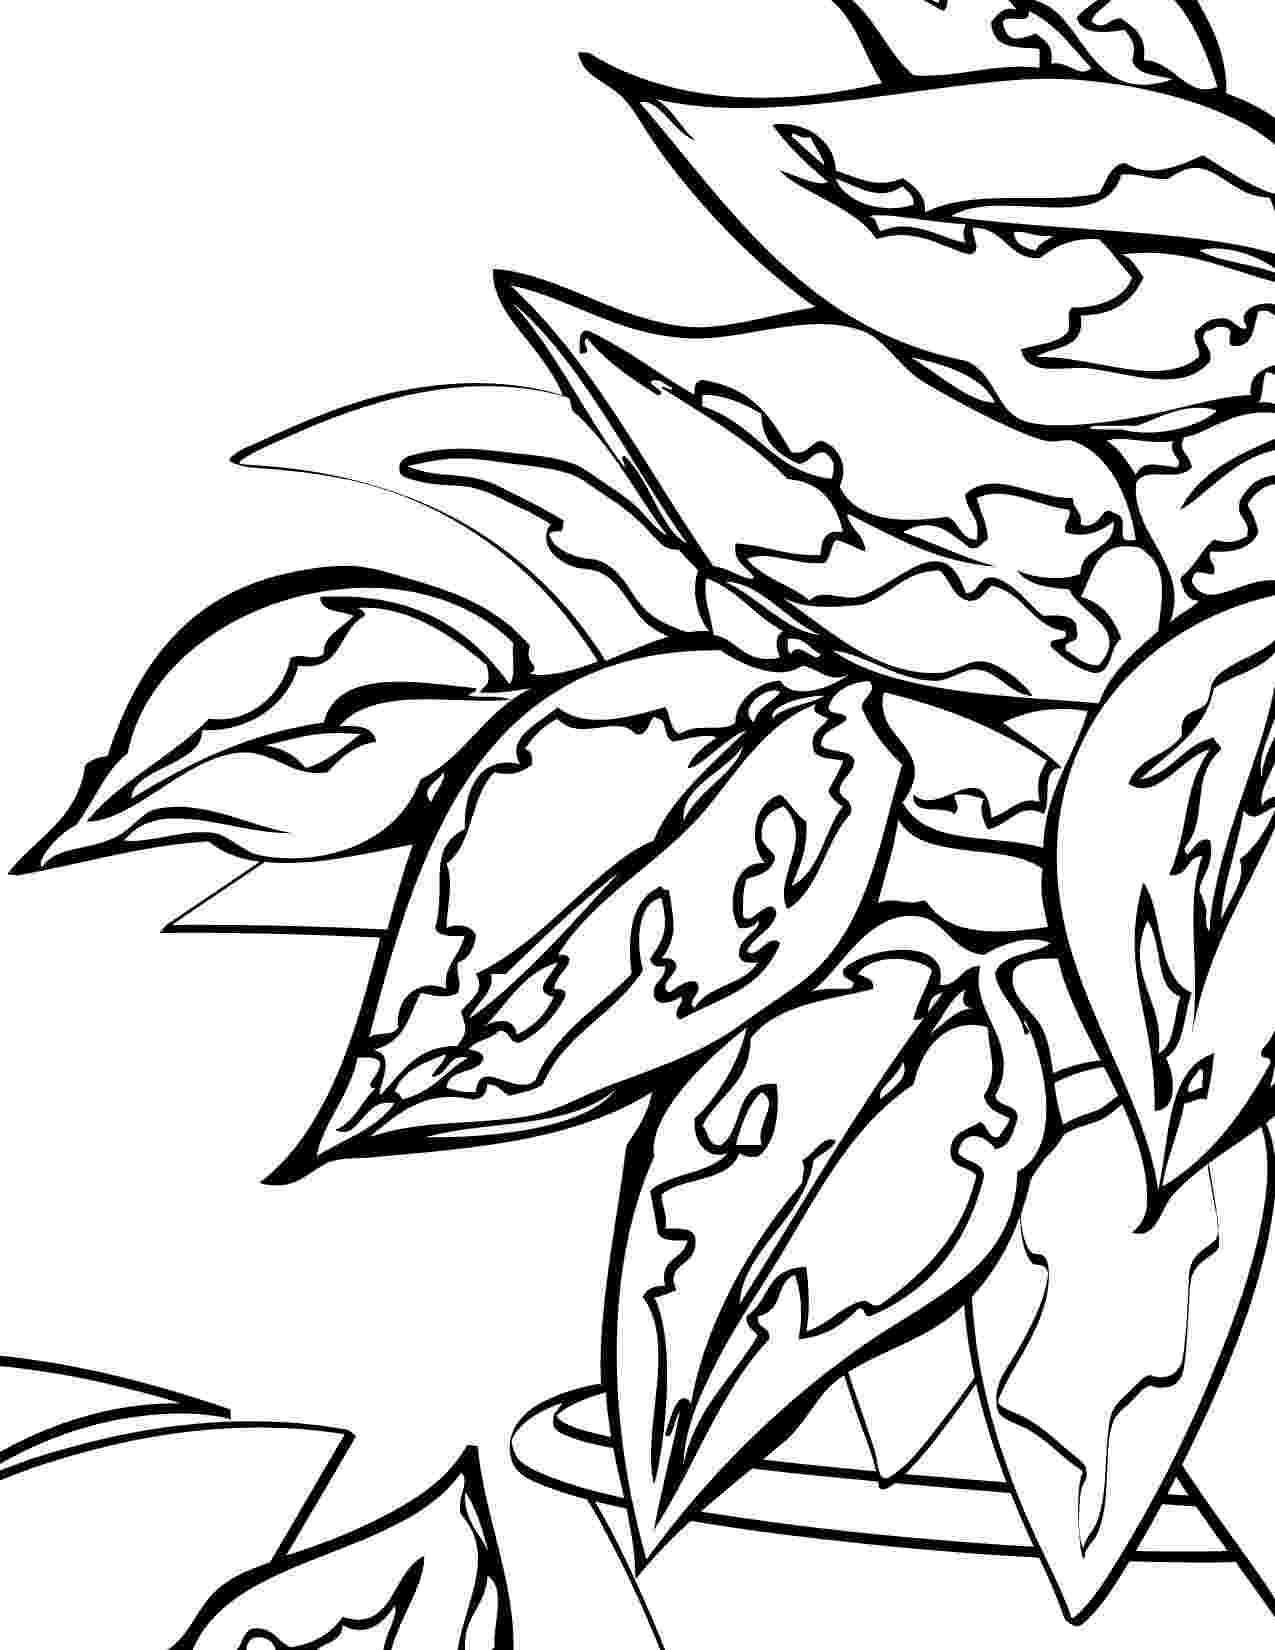 plant colouring sheets plant coloring pages to download and print for free colouring sheets plant